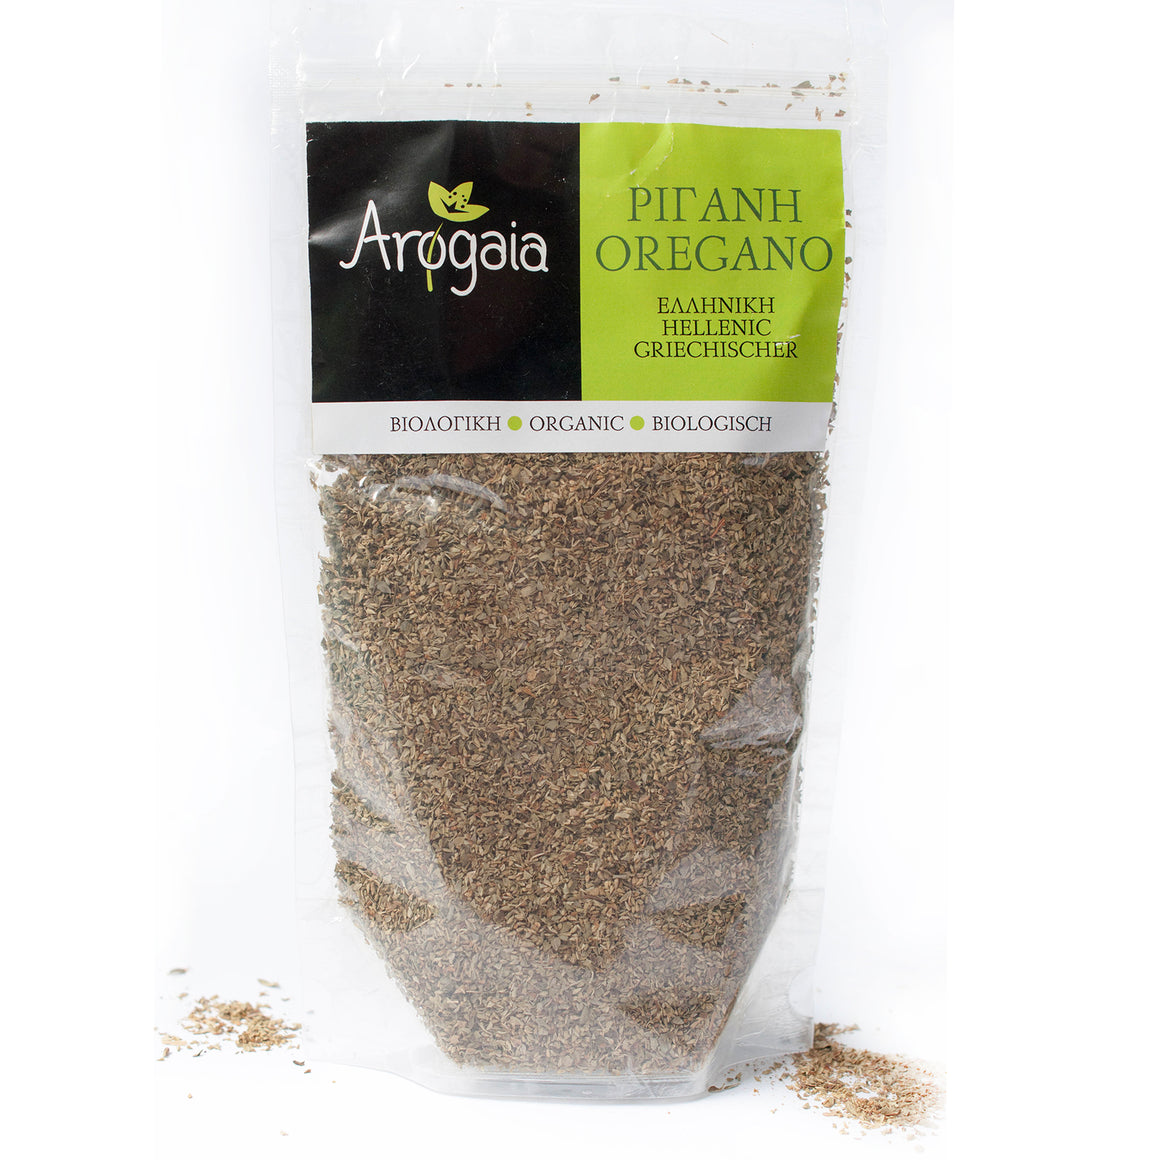 Arogaia Organic Greek Oregano in a resealable bag, 70gr